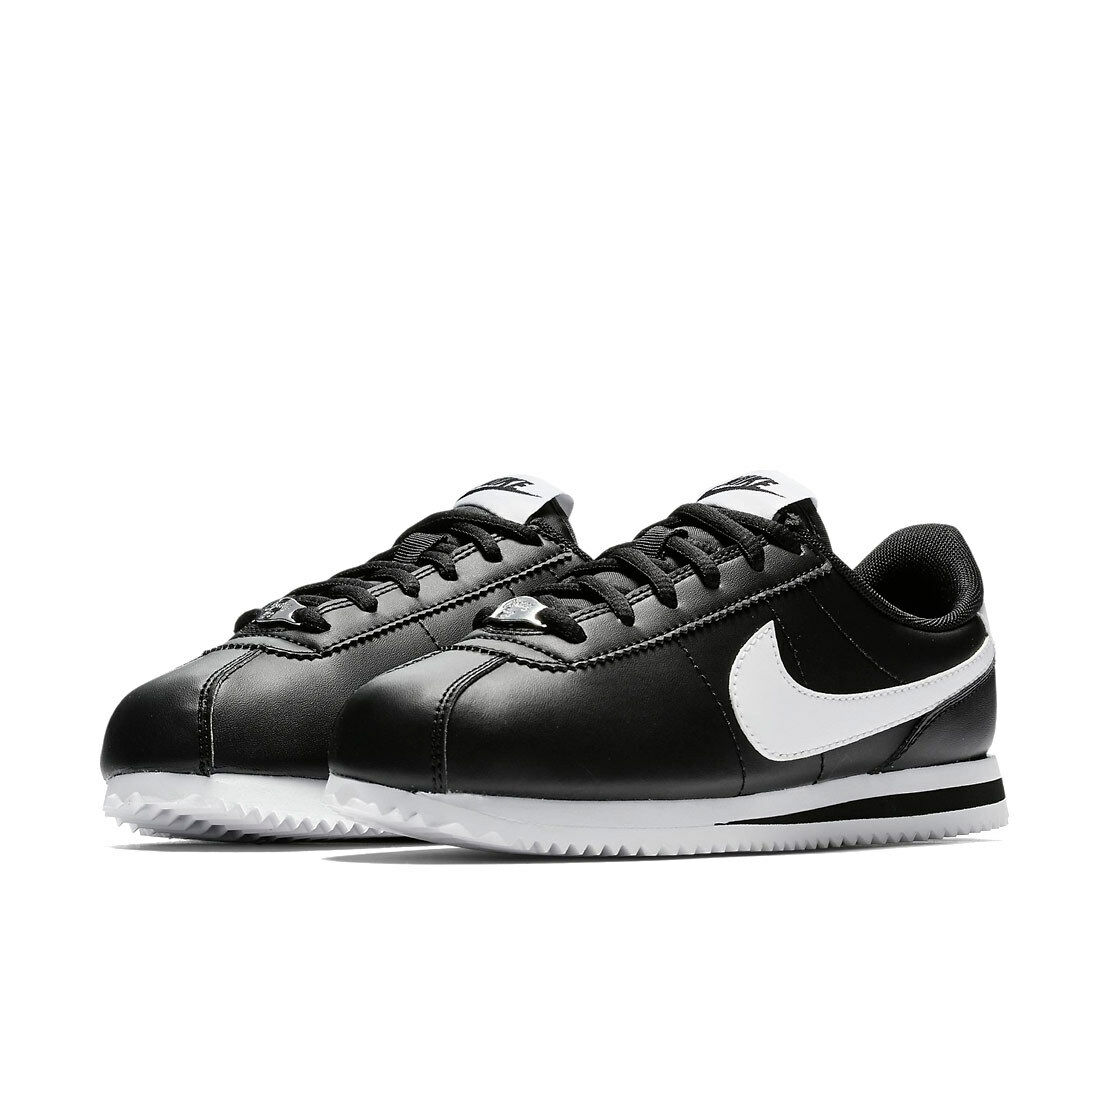 scarpe nike CORTEZ BASIC BLACK SL (GS) classic leather pelle nero bianco origin